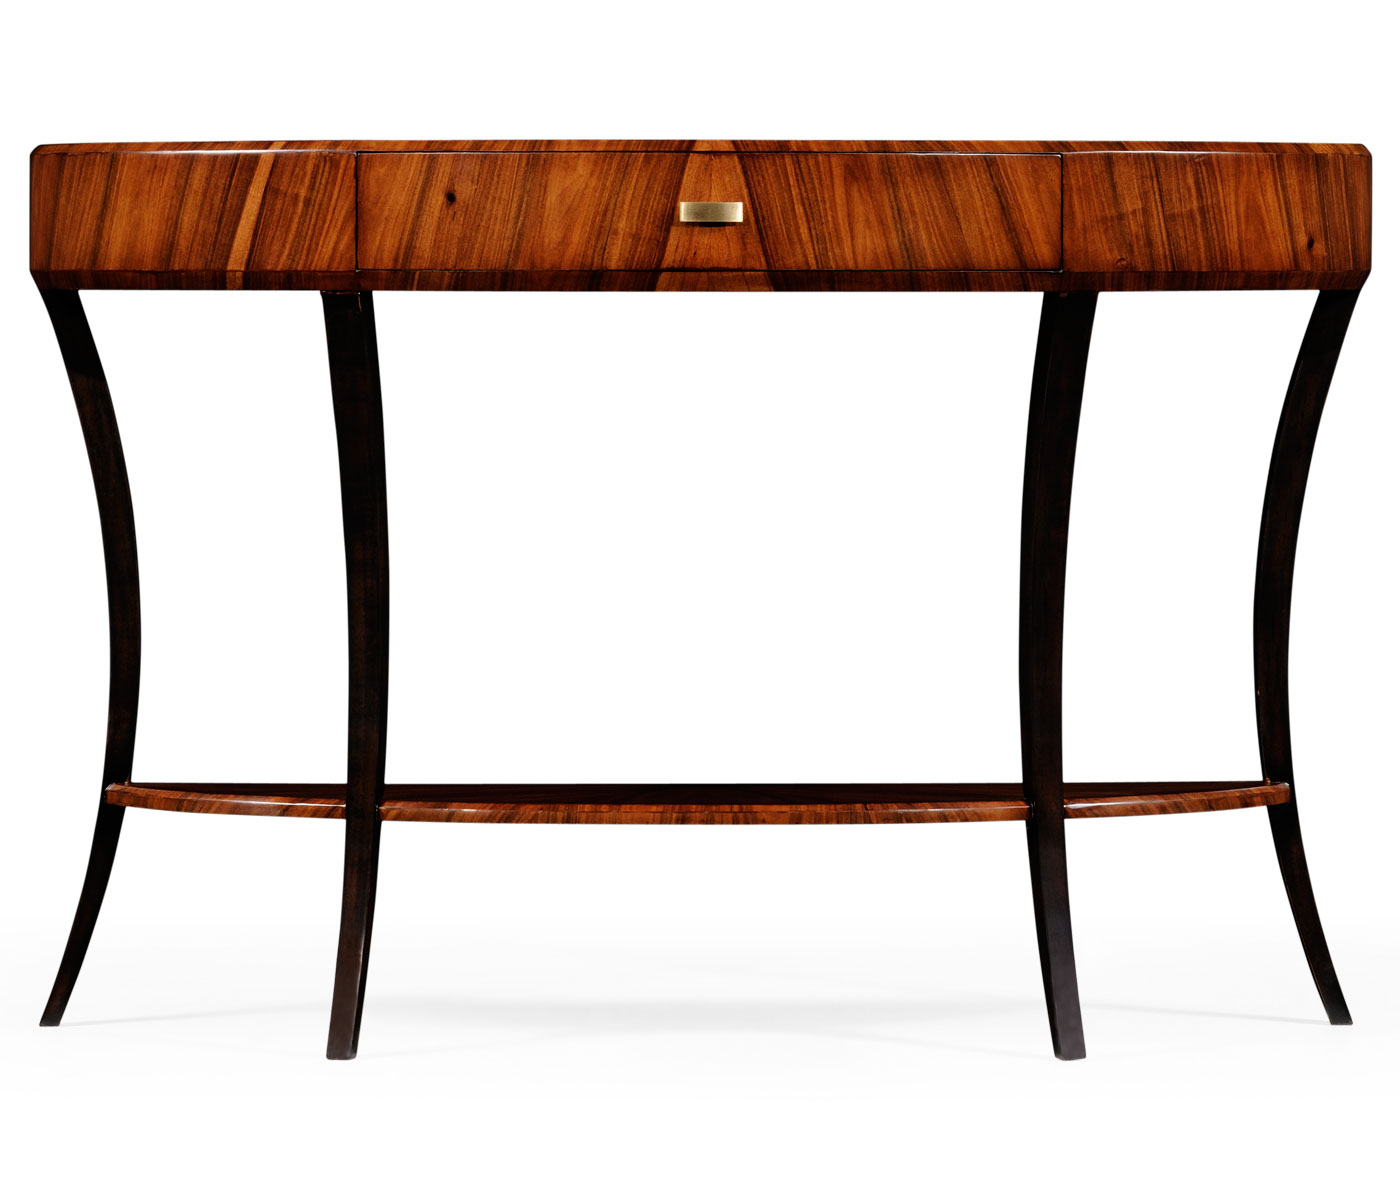 Art Deco High Lustre Large Demilune Console Table for Drawer